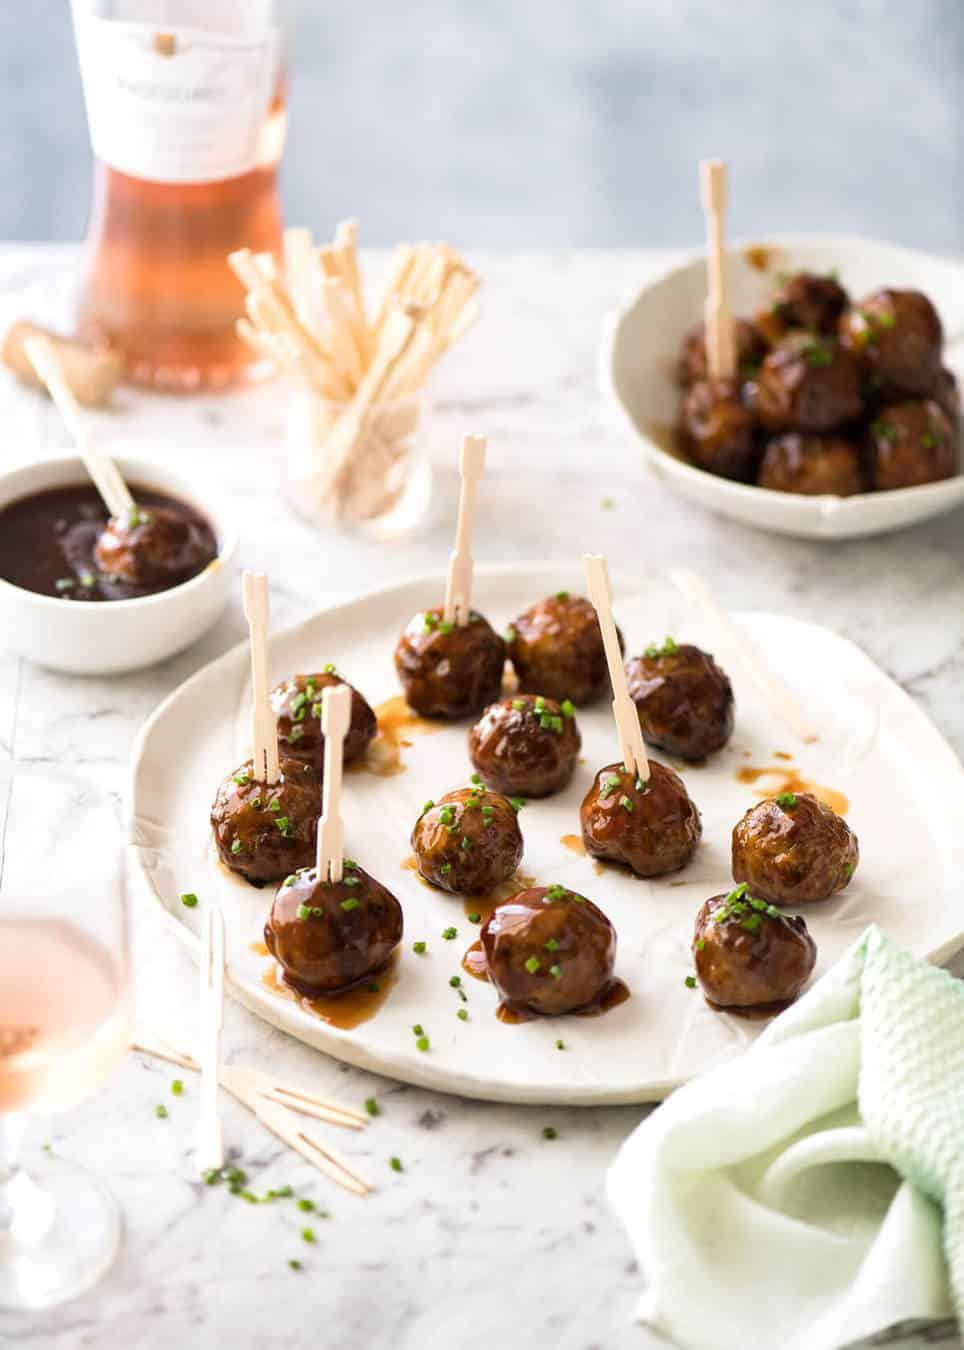 Plump, juicy and soft, these Party Cocktail Meatballs are baked and served with a fabulous Sweet & Sour Dipping Sauce that's super quick to make. Great make ahead for parties! www.recipetineats.com